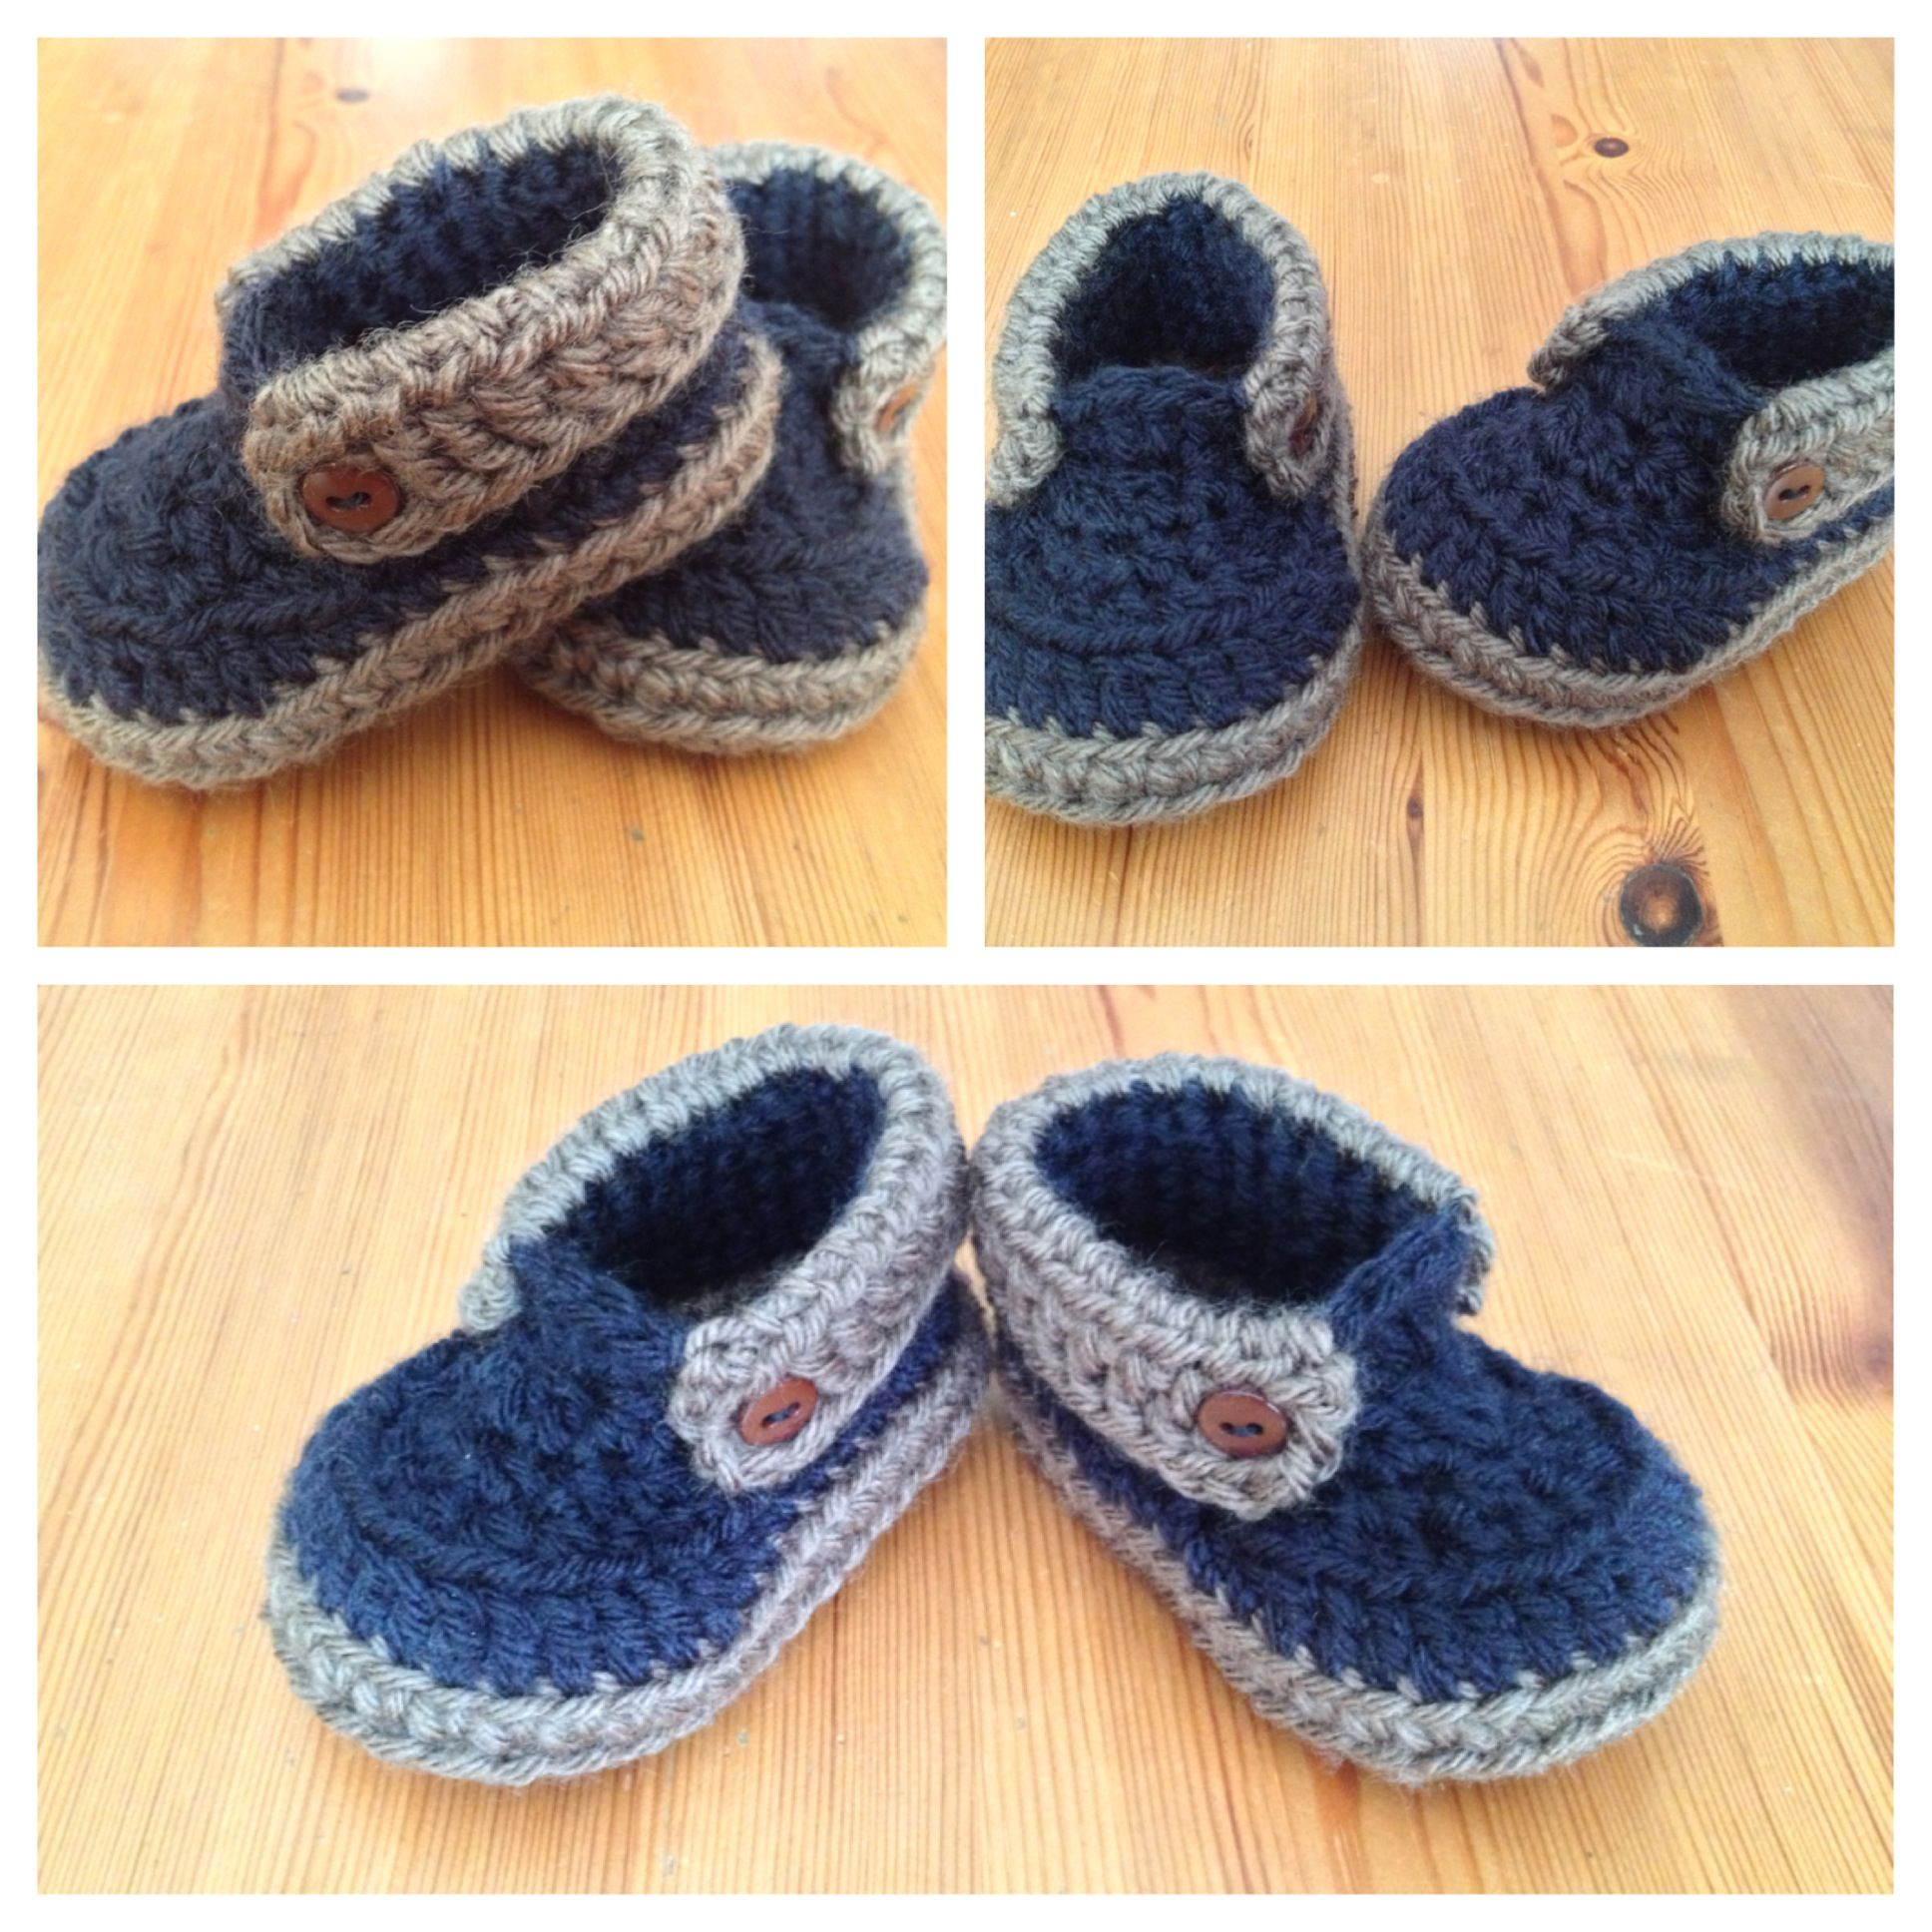 Crochet Baby Booties : Free Easy Crochet Baby Booties Patterns